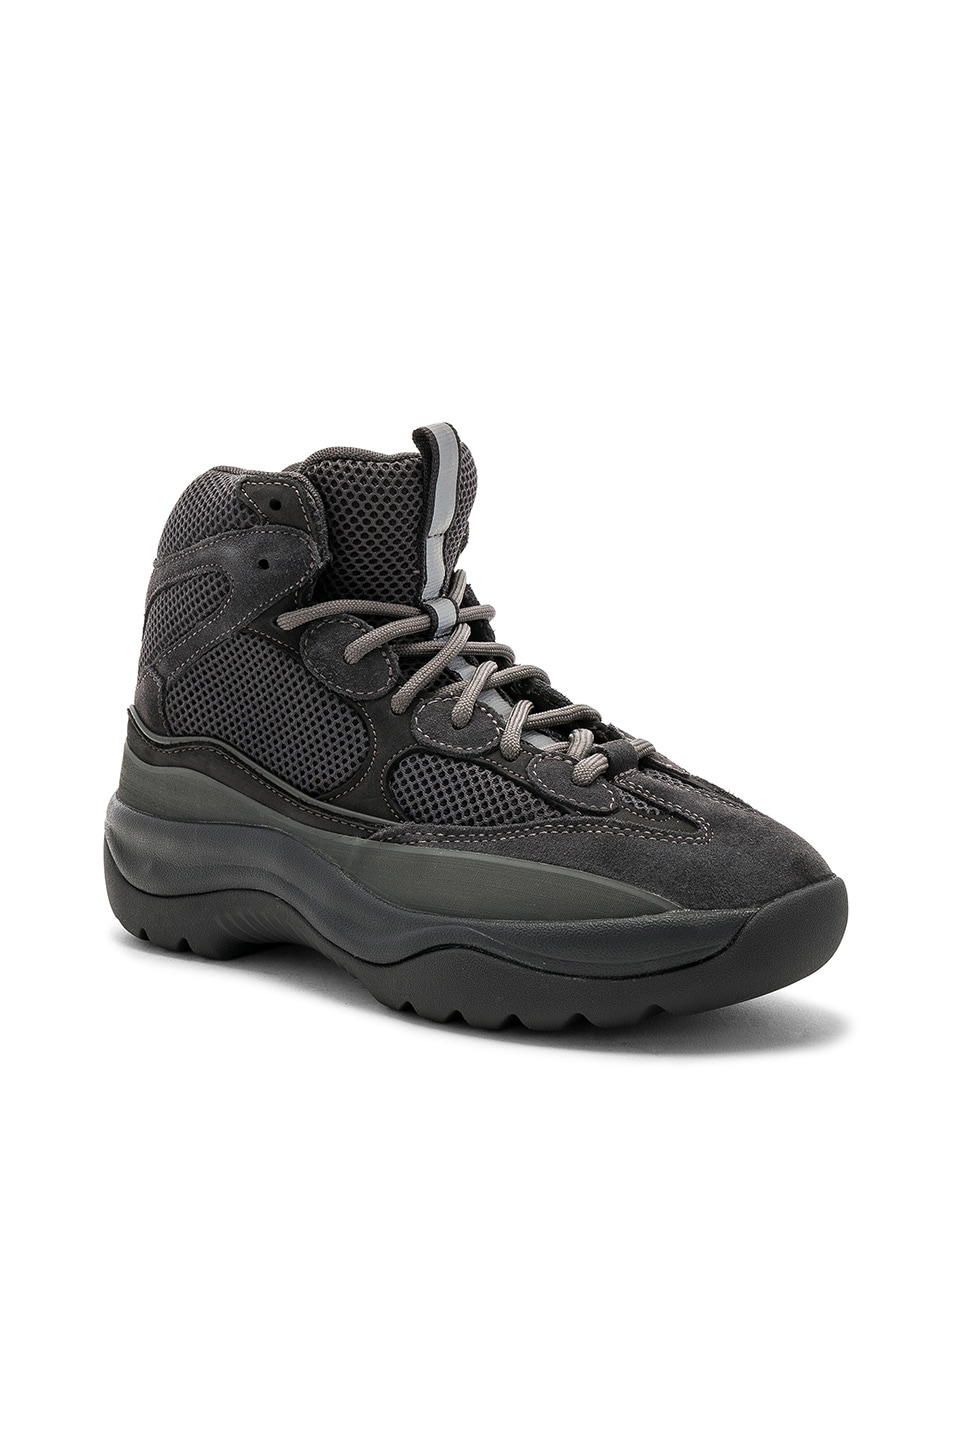 d4c56a6f0 Image 1 of YEEZY Desert Boots in Graphite